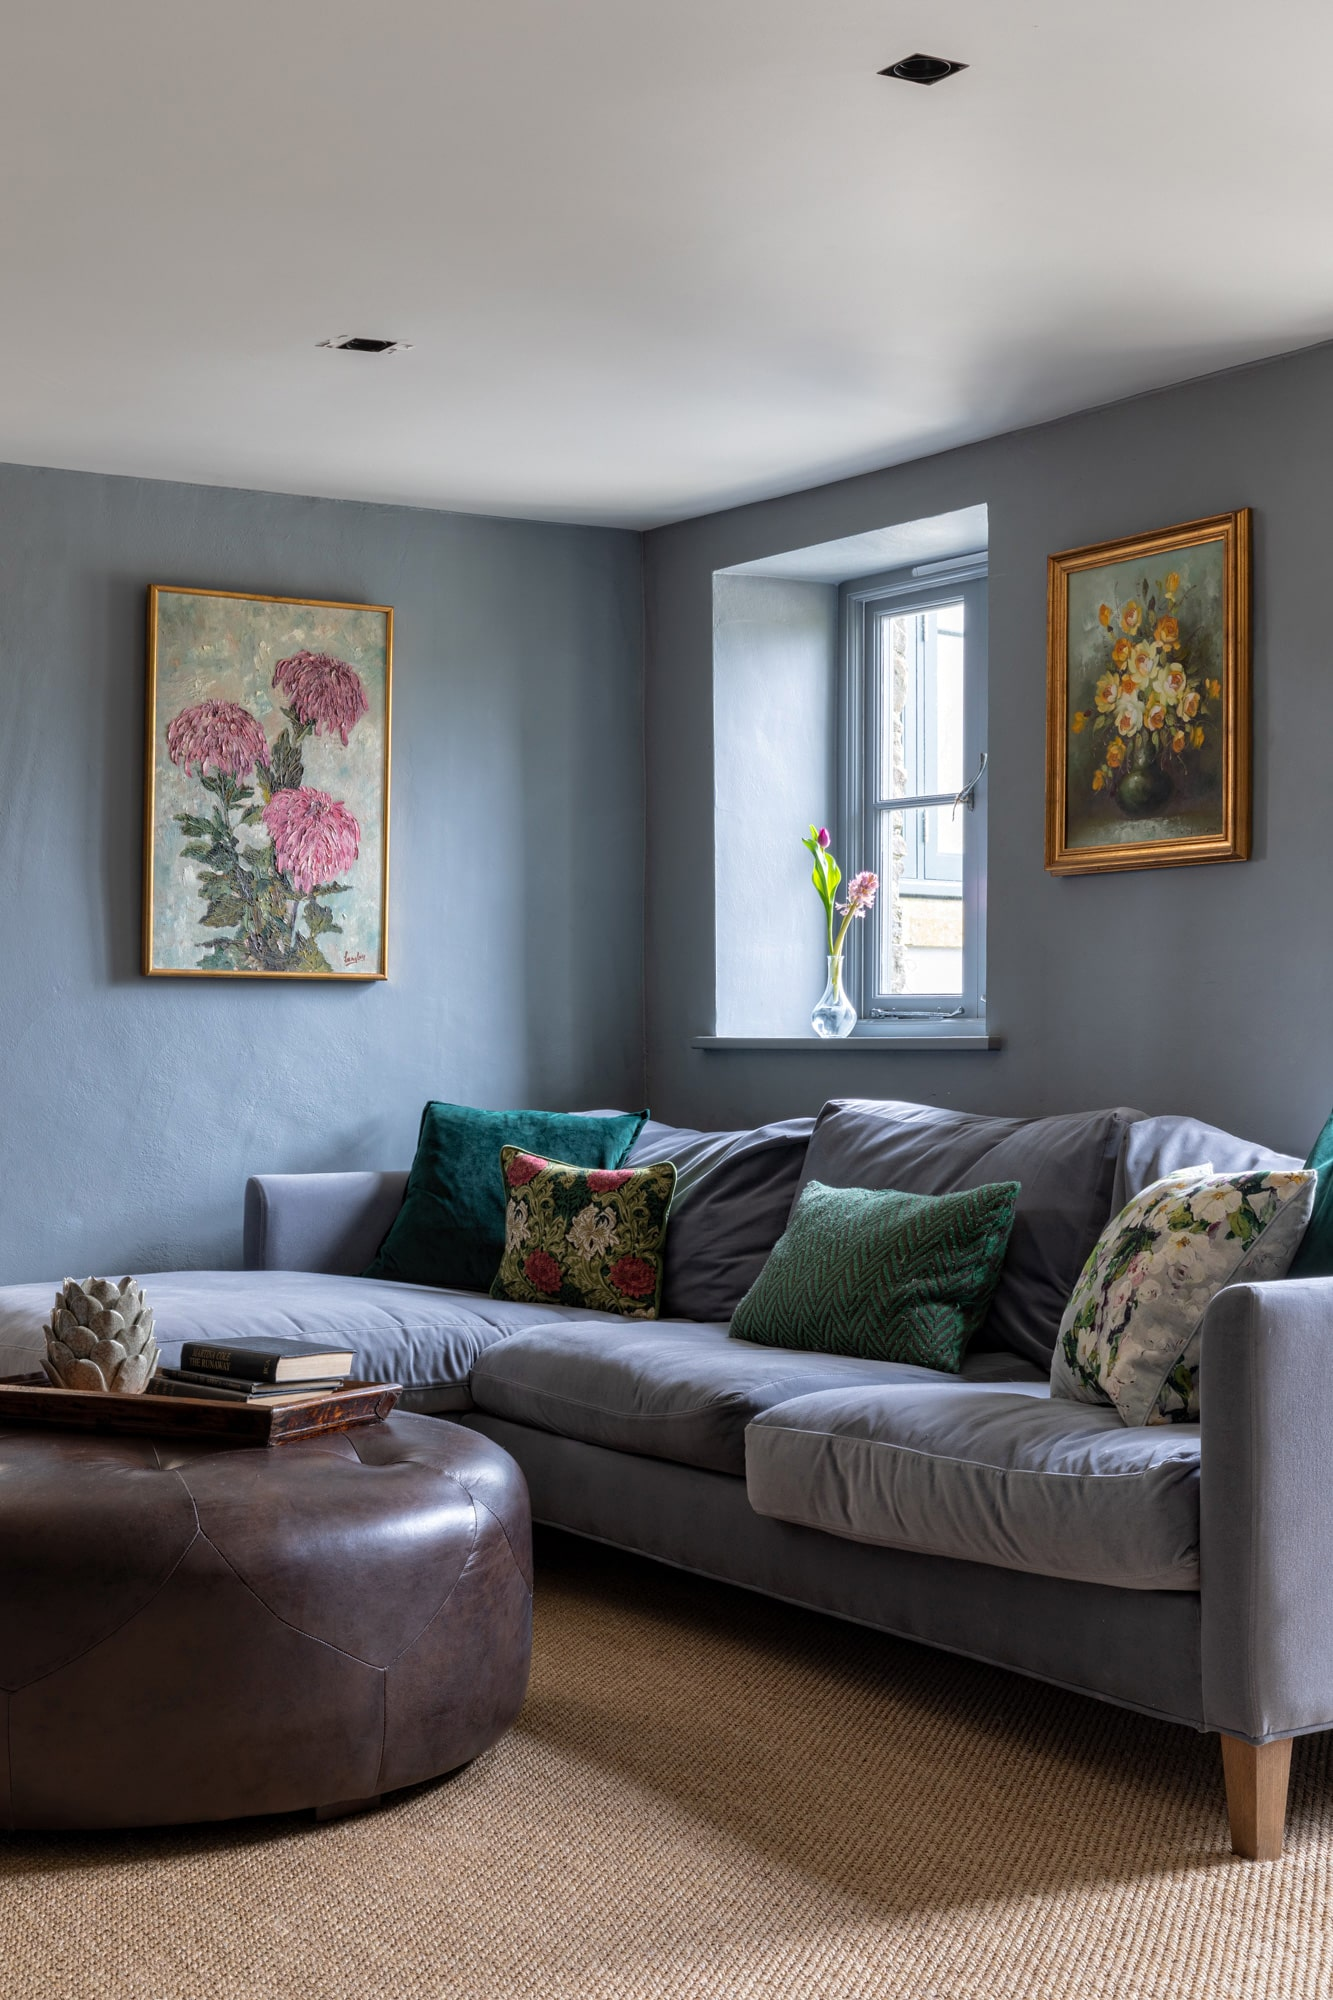 Interior photo of a sitting area: grey velvet sofa with floral and green cushions; two floral art works on the walls